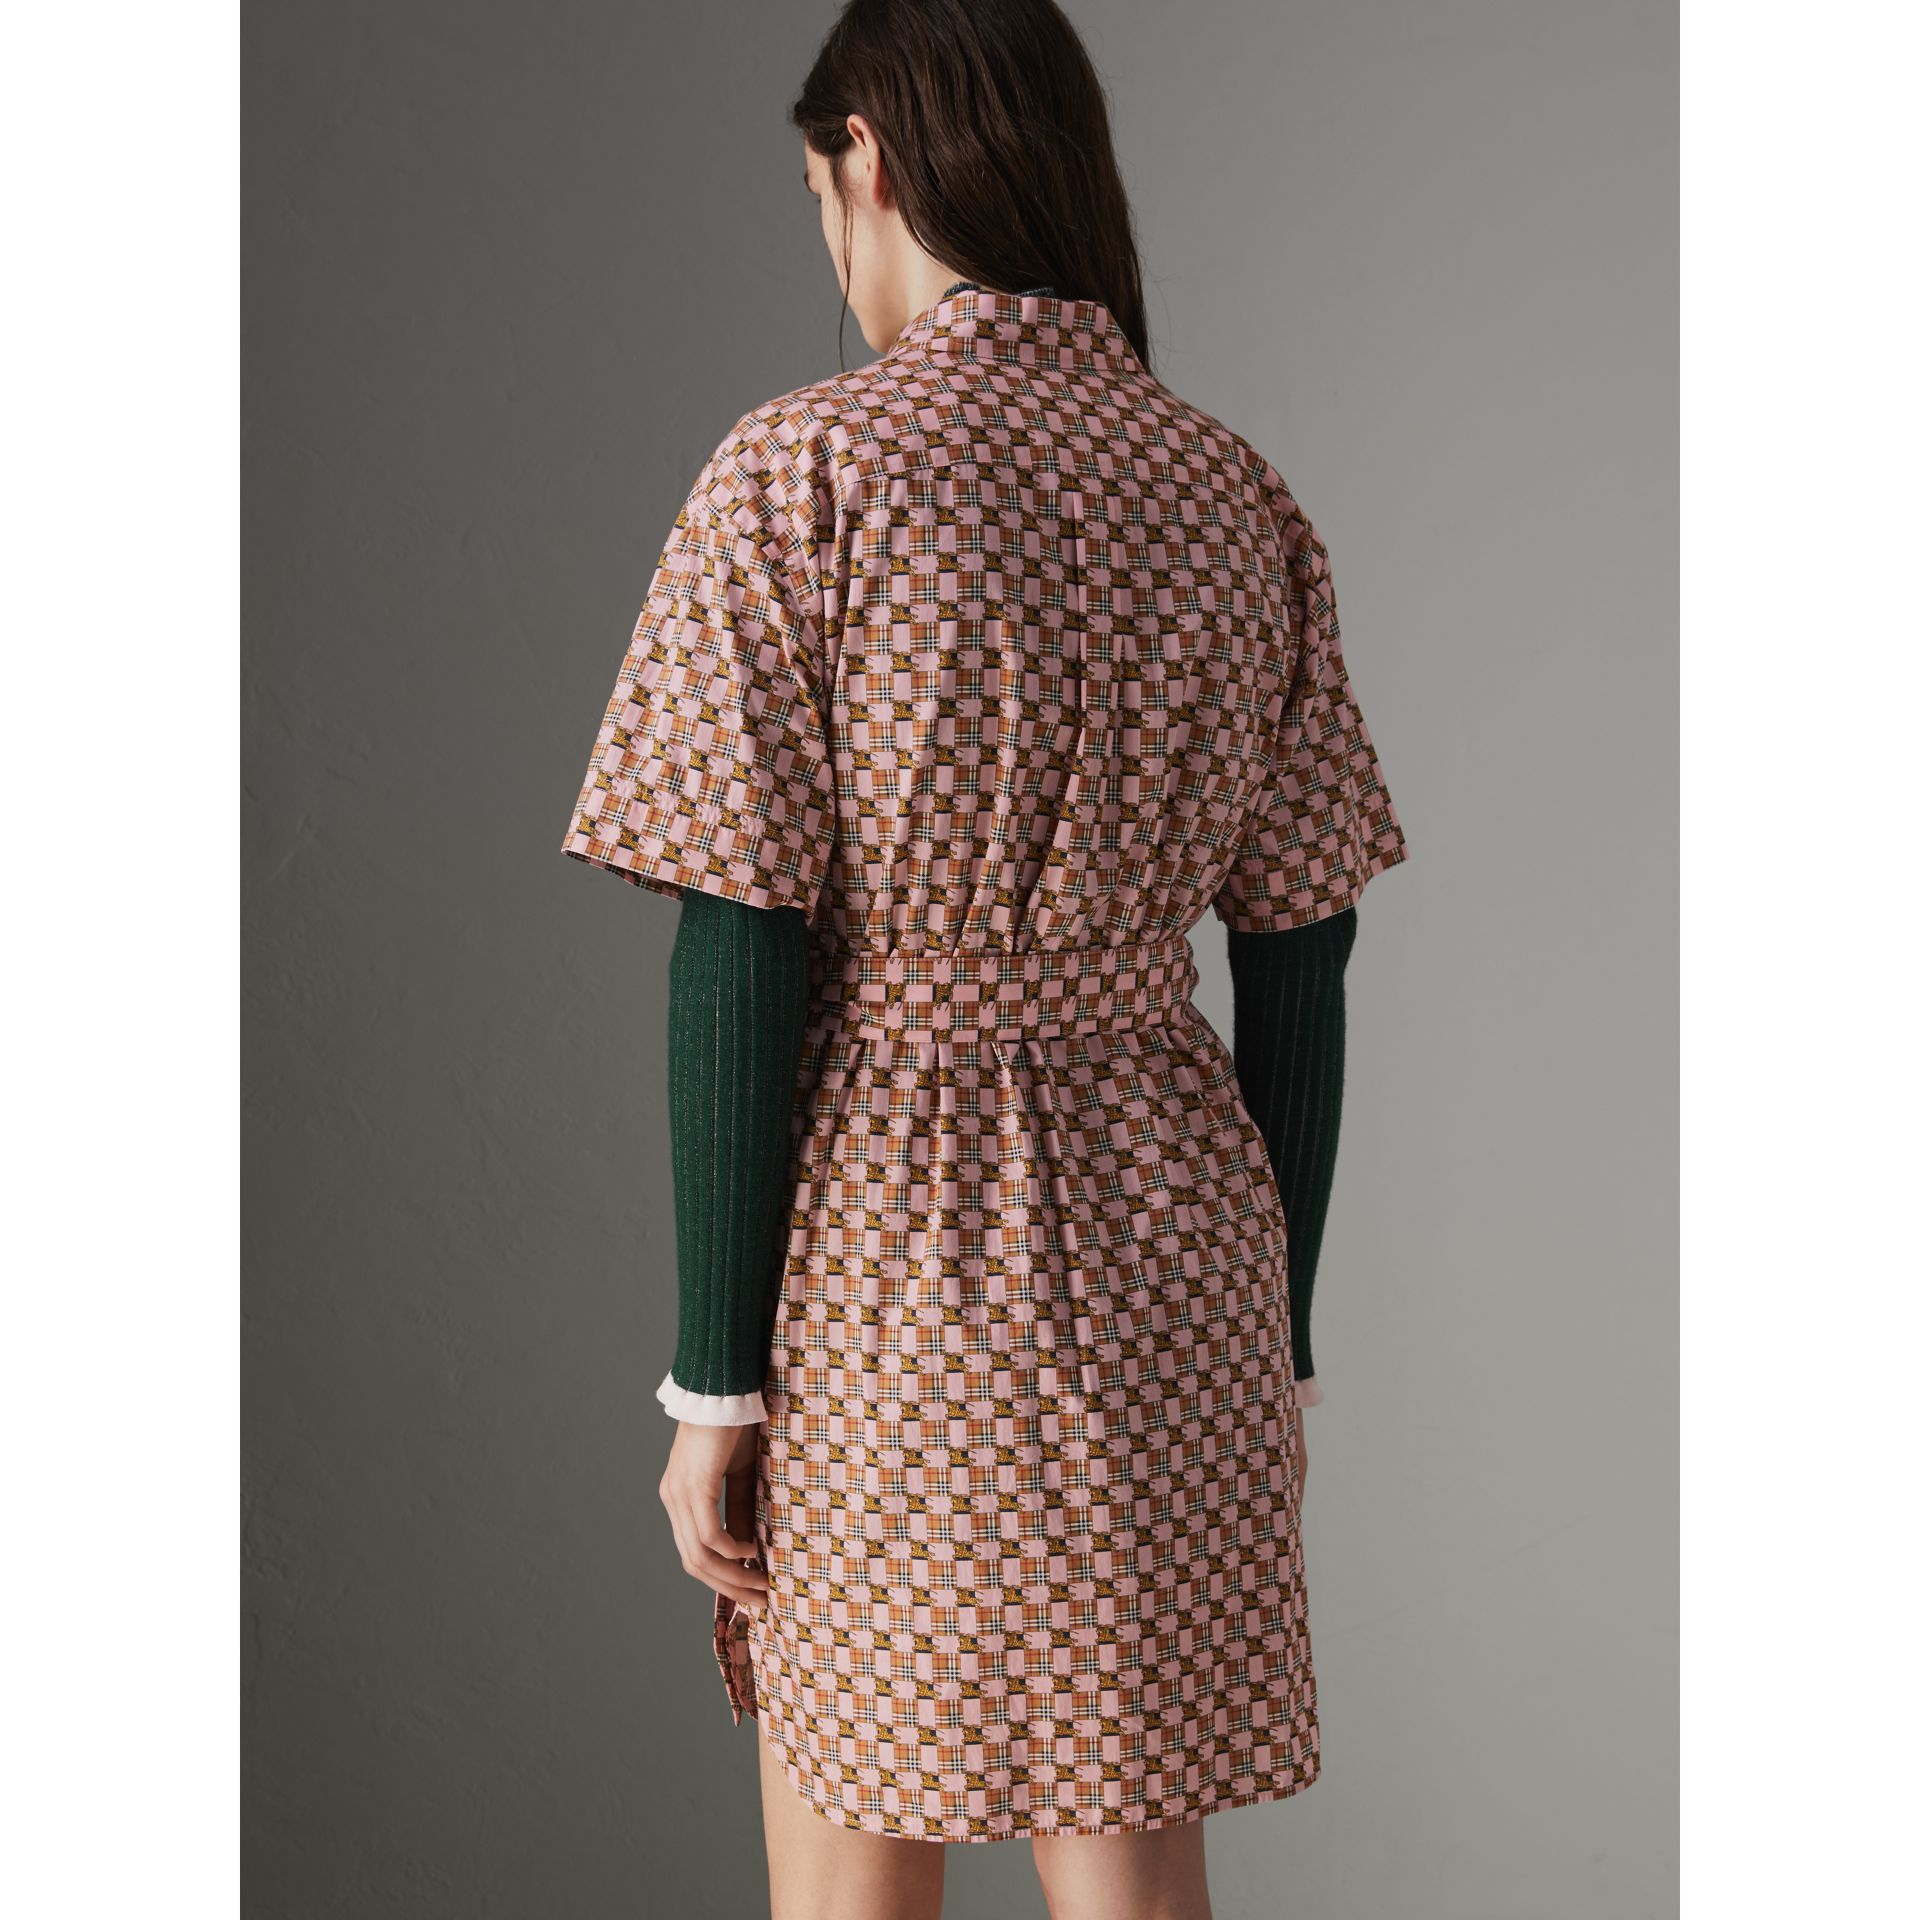 Tiled Archive Print Cotton Shirt Dress in Pink - Women | Burberry Singapore - gallery image 2